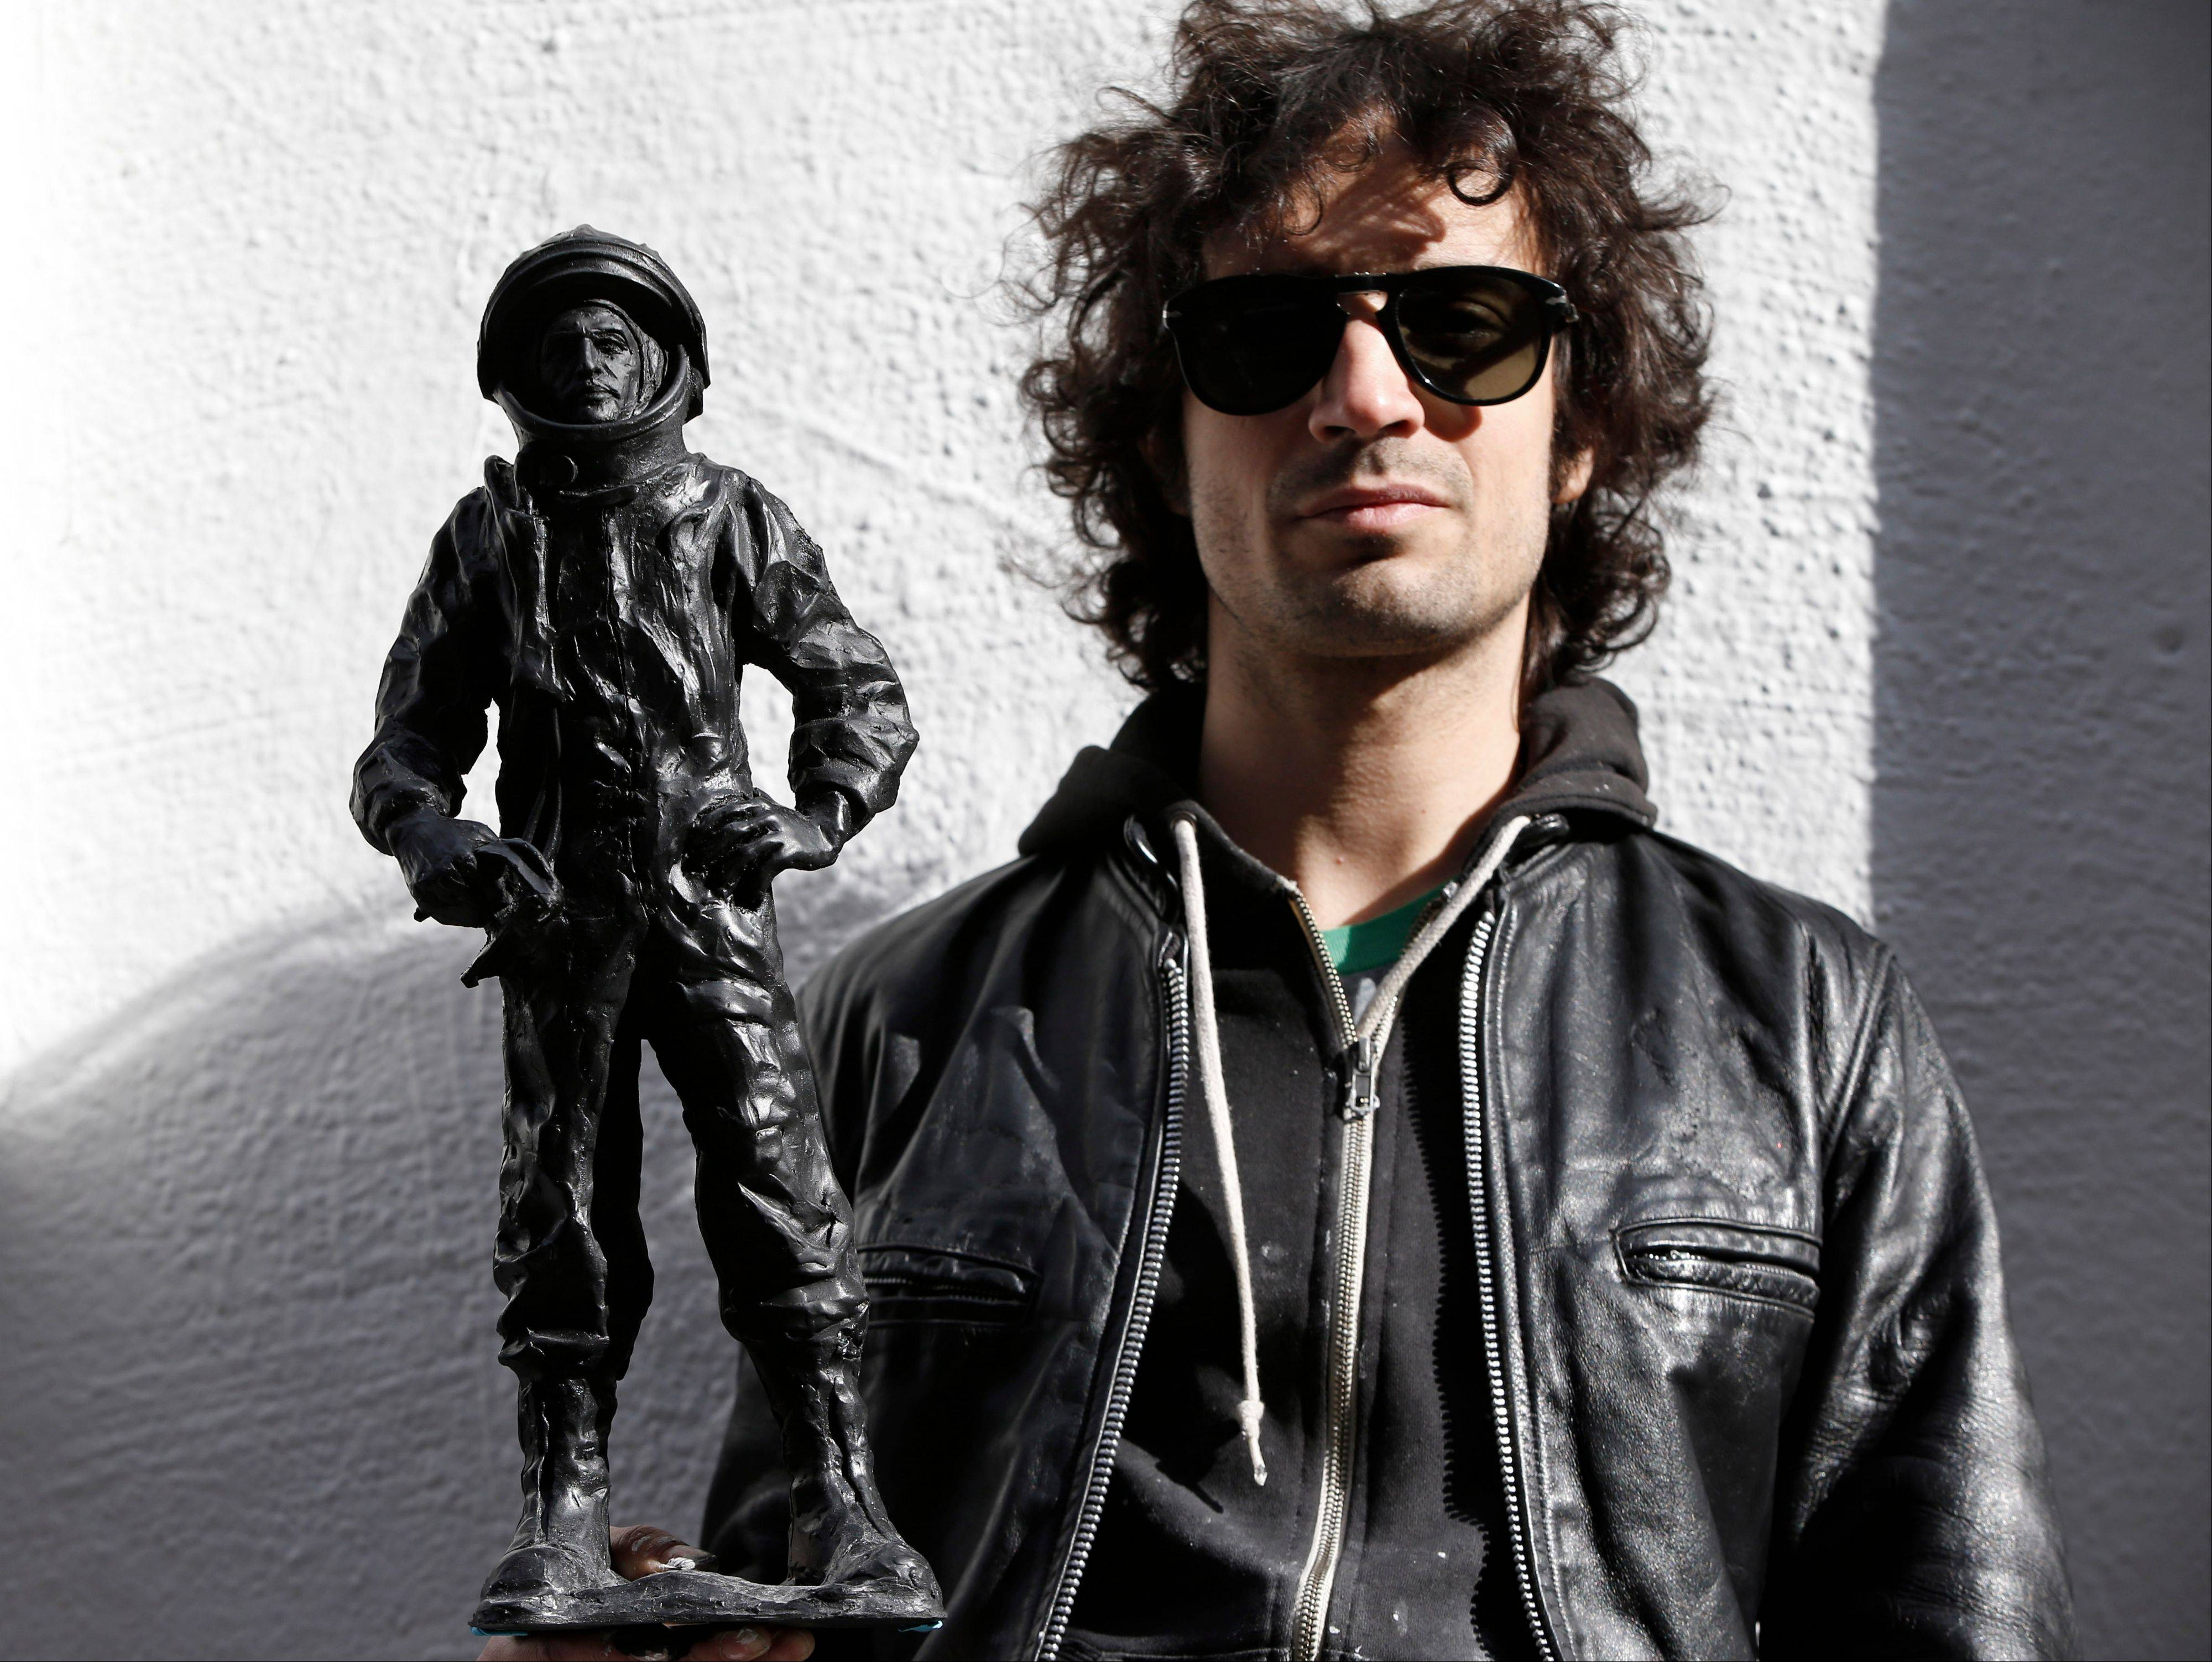 The Strokes' drummer Fabrizio Moretti with one of his cast-in-plastic astronauts beside the SoHo Rag & Bone store where his art is installed in New York. Moretti's installation at one time included white niches filled with white plastic astronauts, but they were all stolen. Moretti created new black astronauts but relocated the new pieces to a second-story fire escape above the installation.